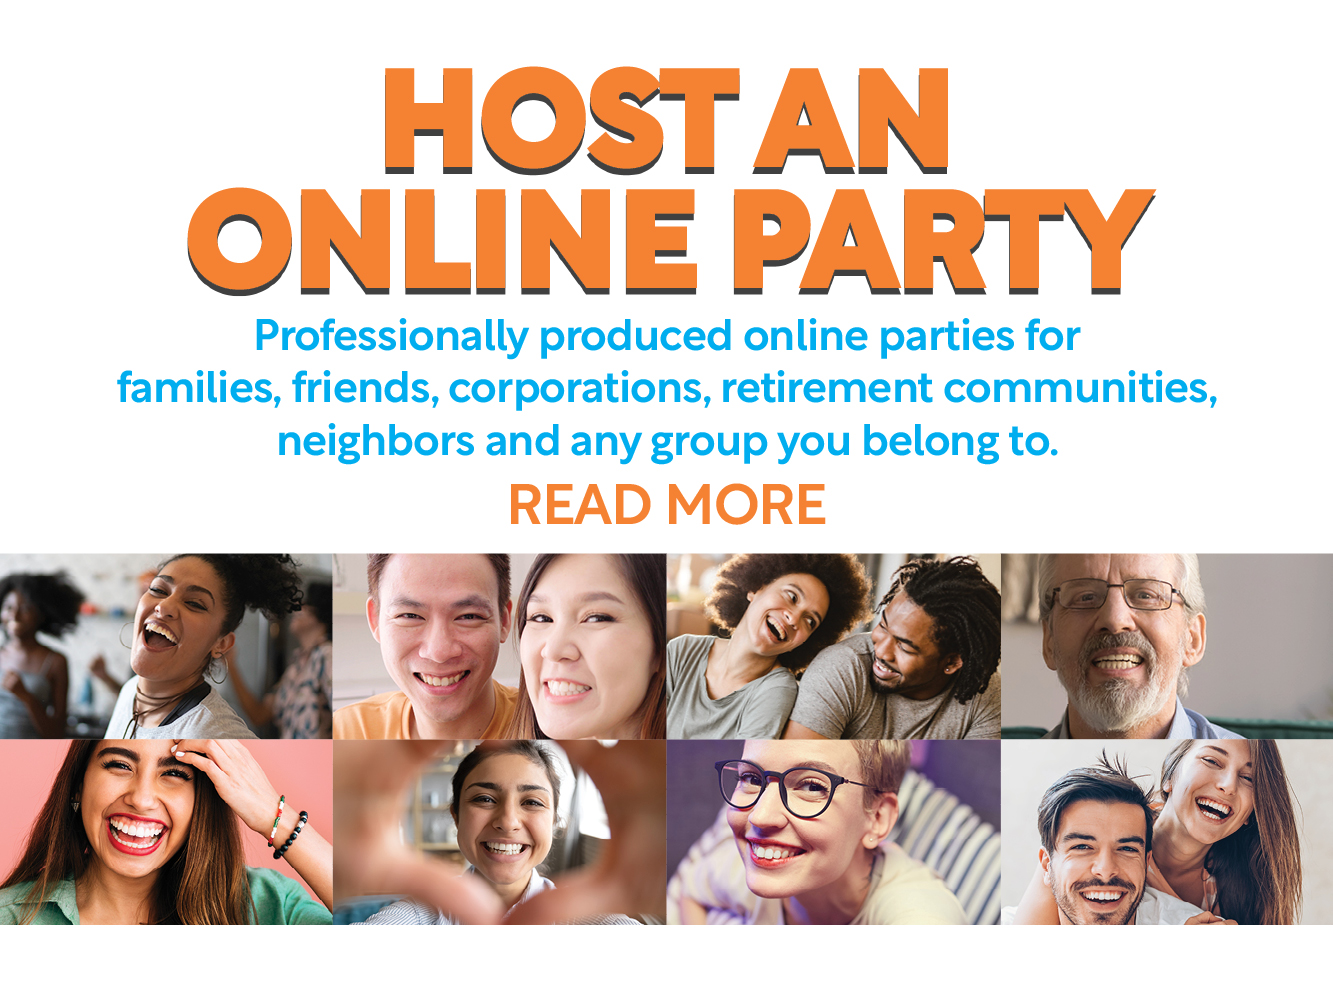 Host an Online Party